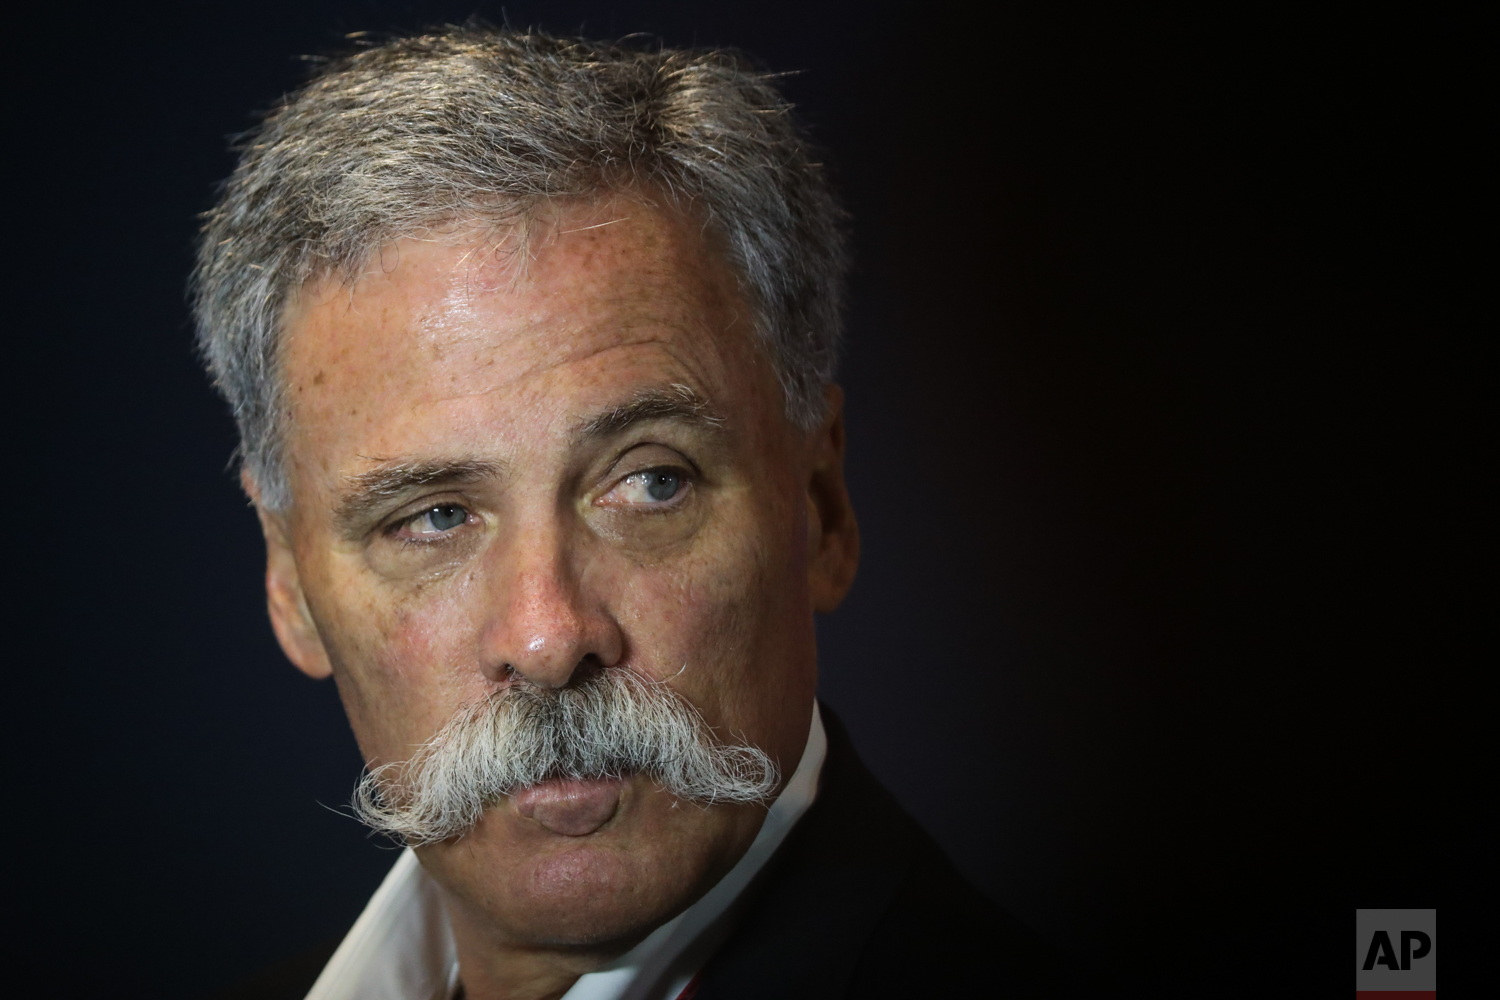 F1 President Chase Carey waits for the start of a press conference at the Marina Bay City Circuit ahead of the Singapore Formula One Grand Prix in Singapore on Friday, Sept. 15, 2017. (AP Photo/Yong Teck Lim)